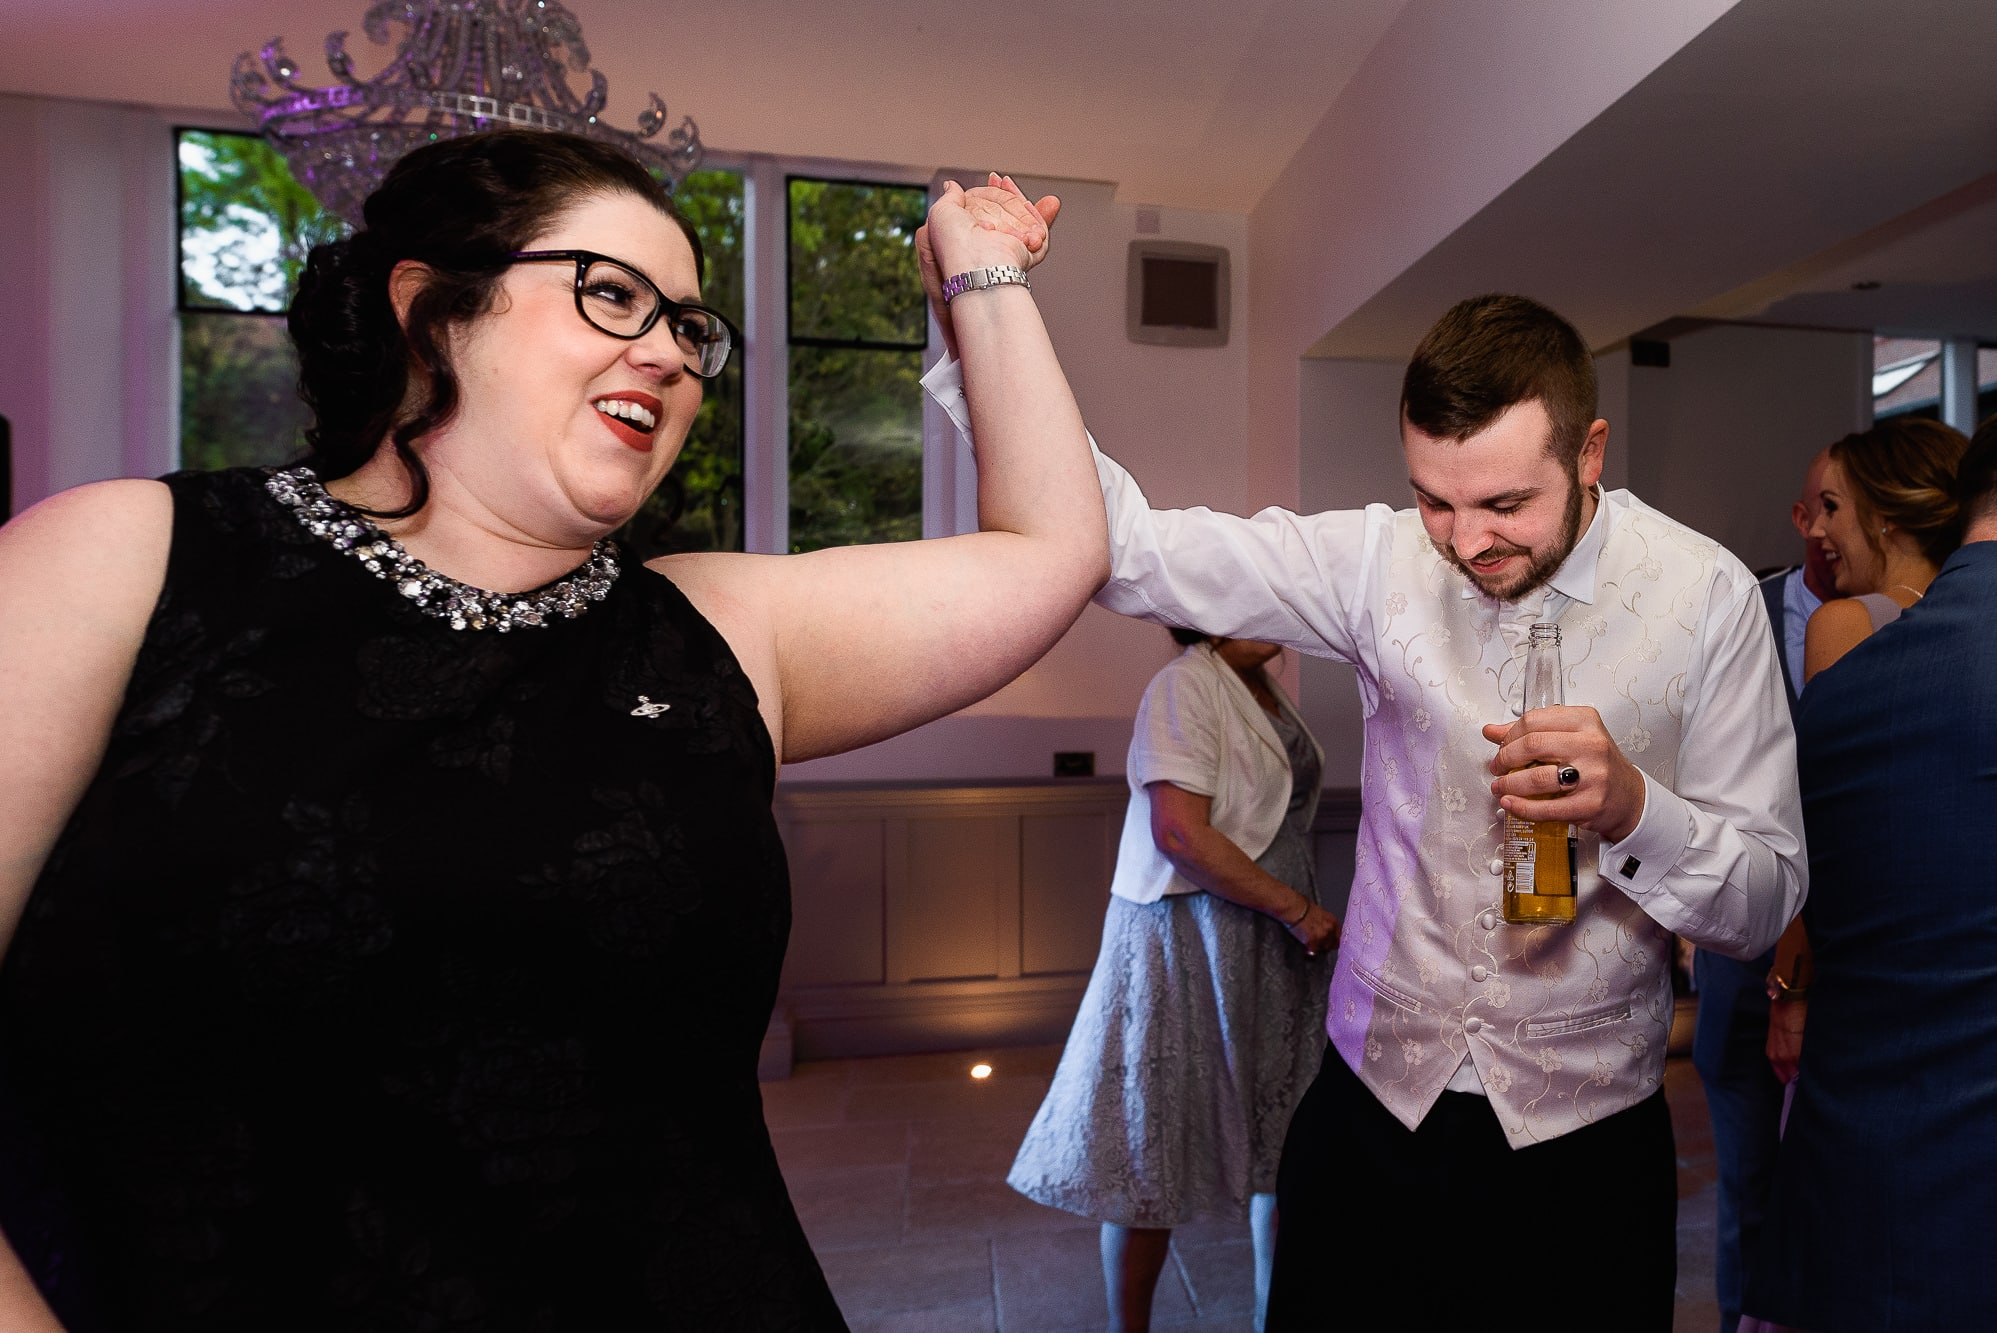 Groom and guests dancing at Tyn Dwr Hall Wedding Venue